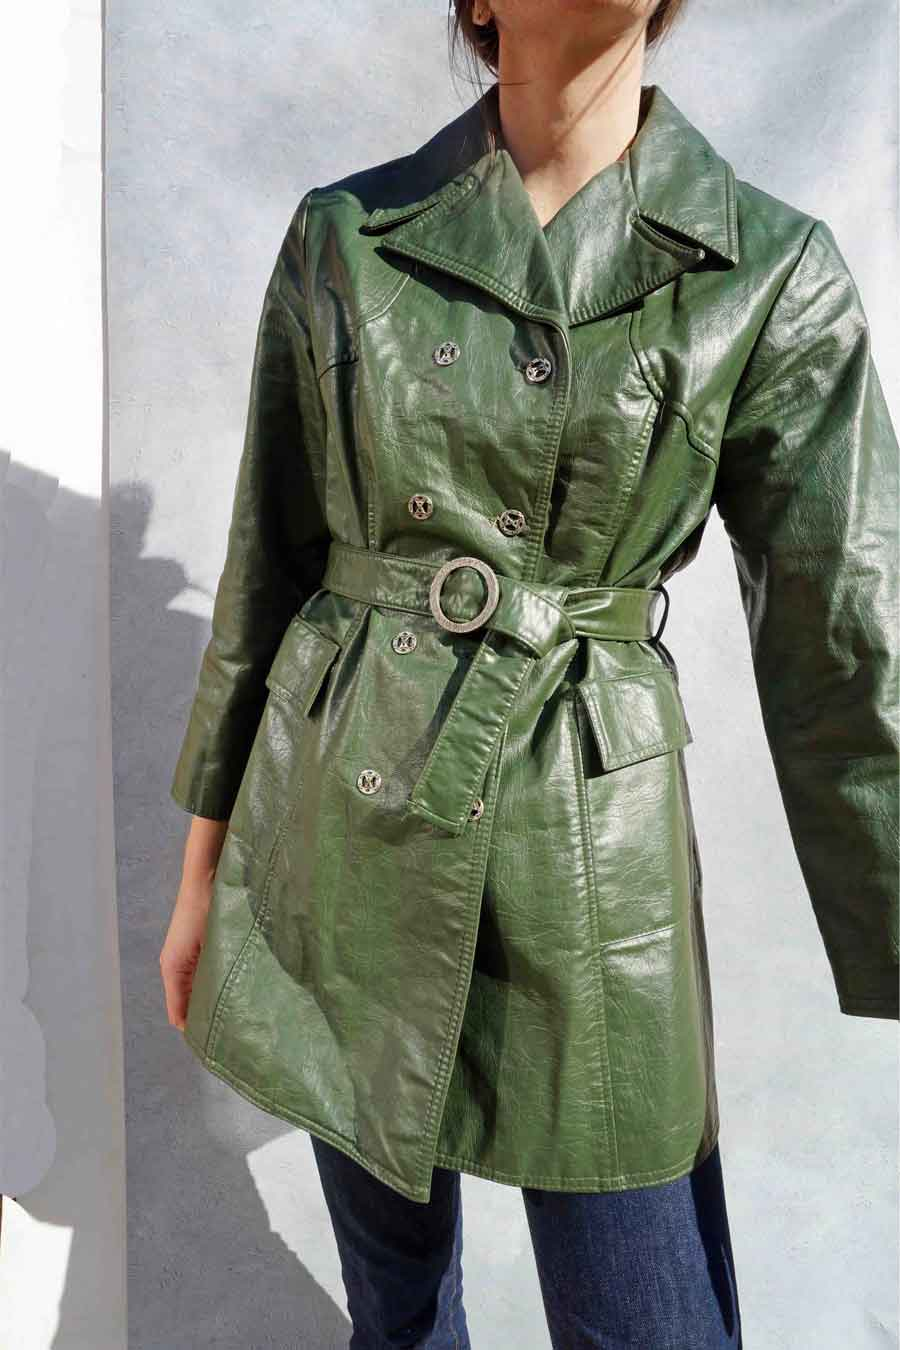 Vintage 60s Green Faux Leather Vinyl Trench Coat - Ada's Attic Vintage